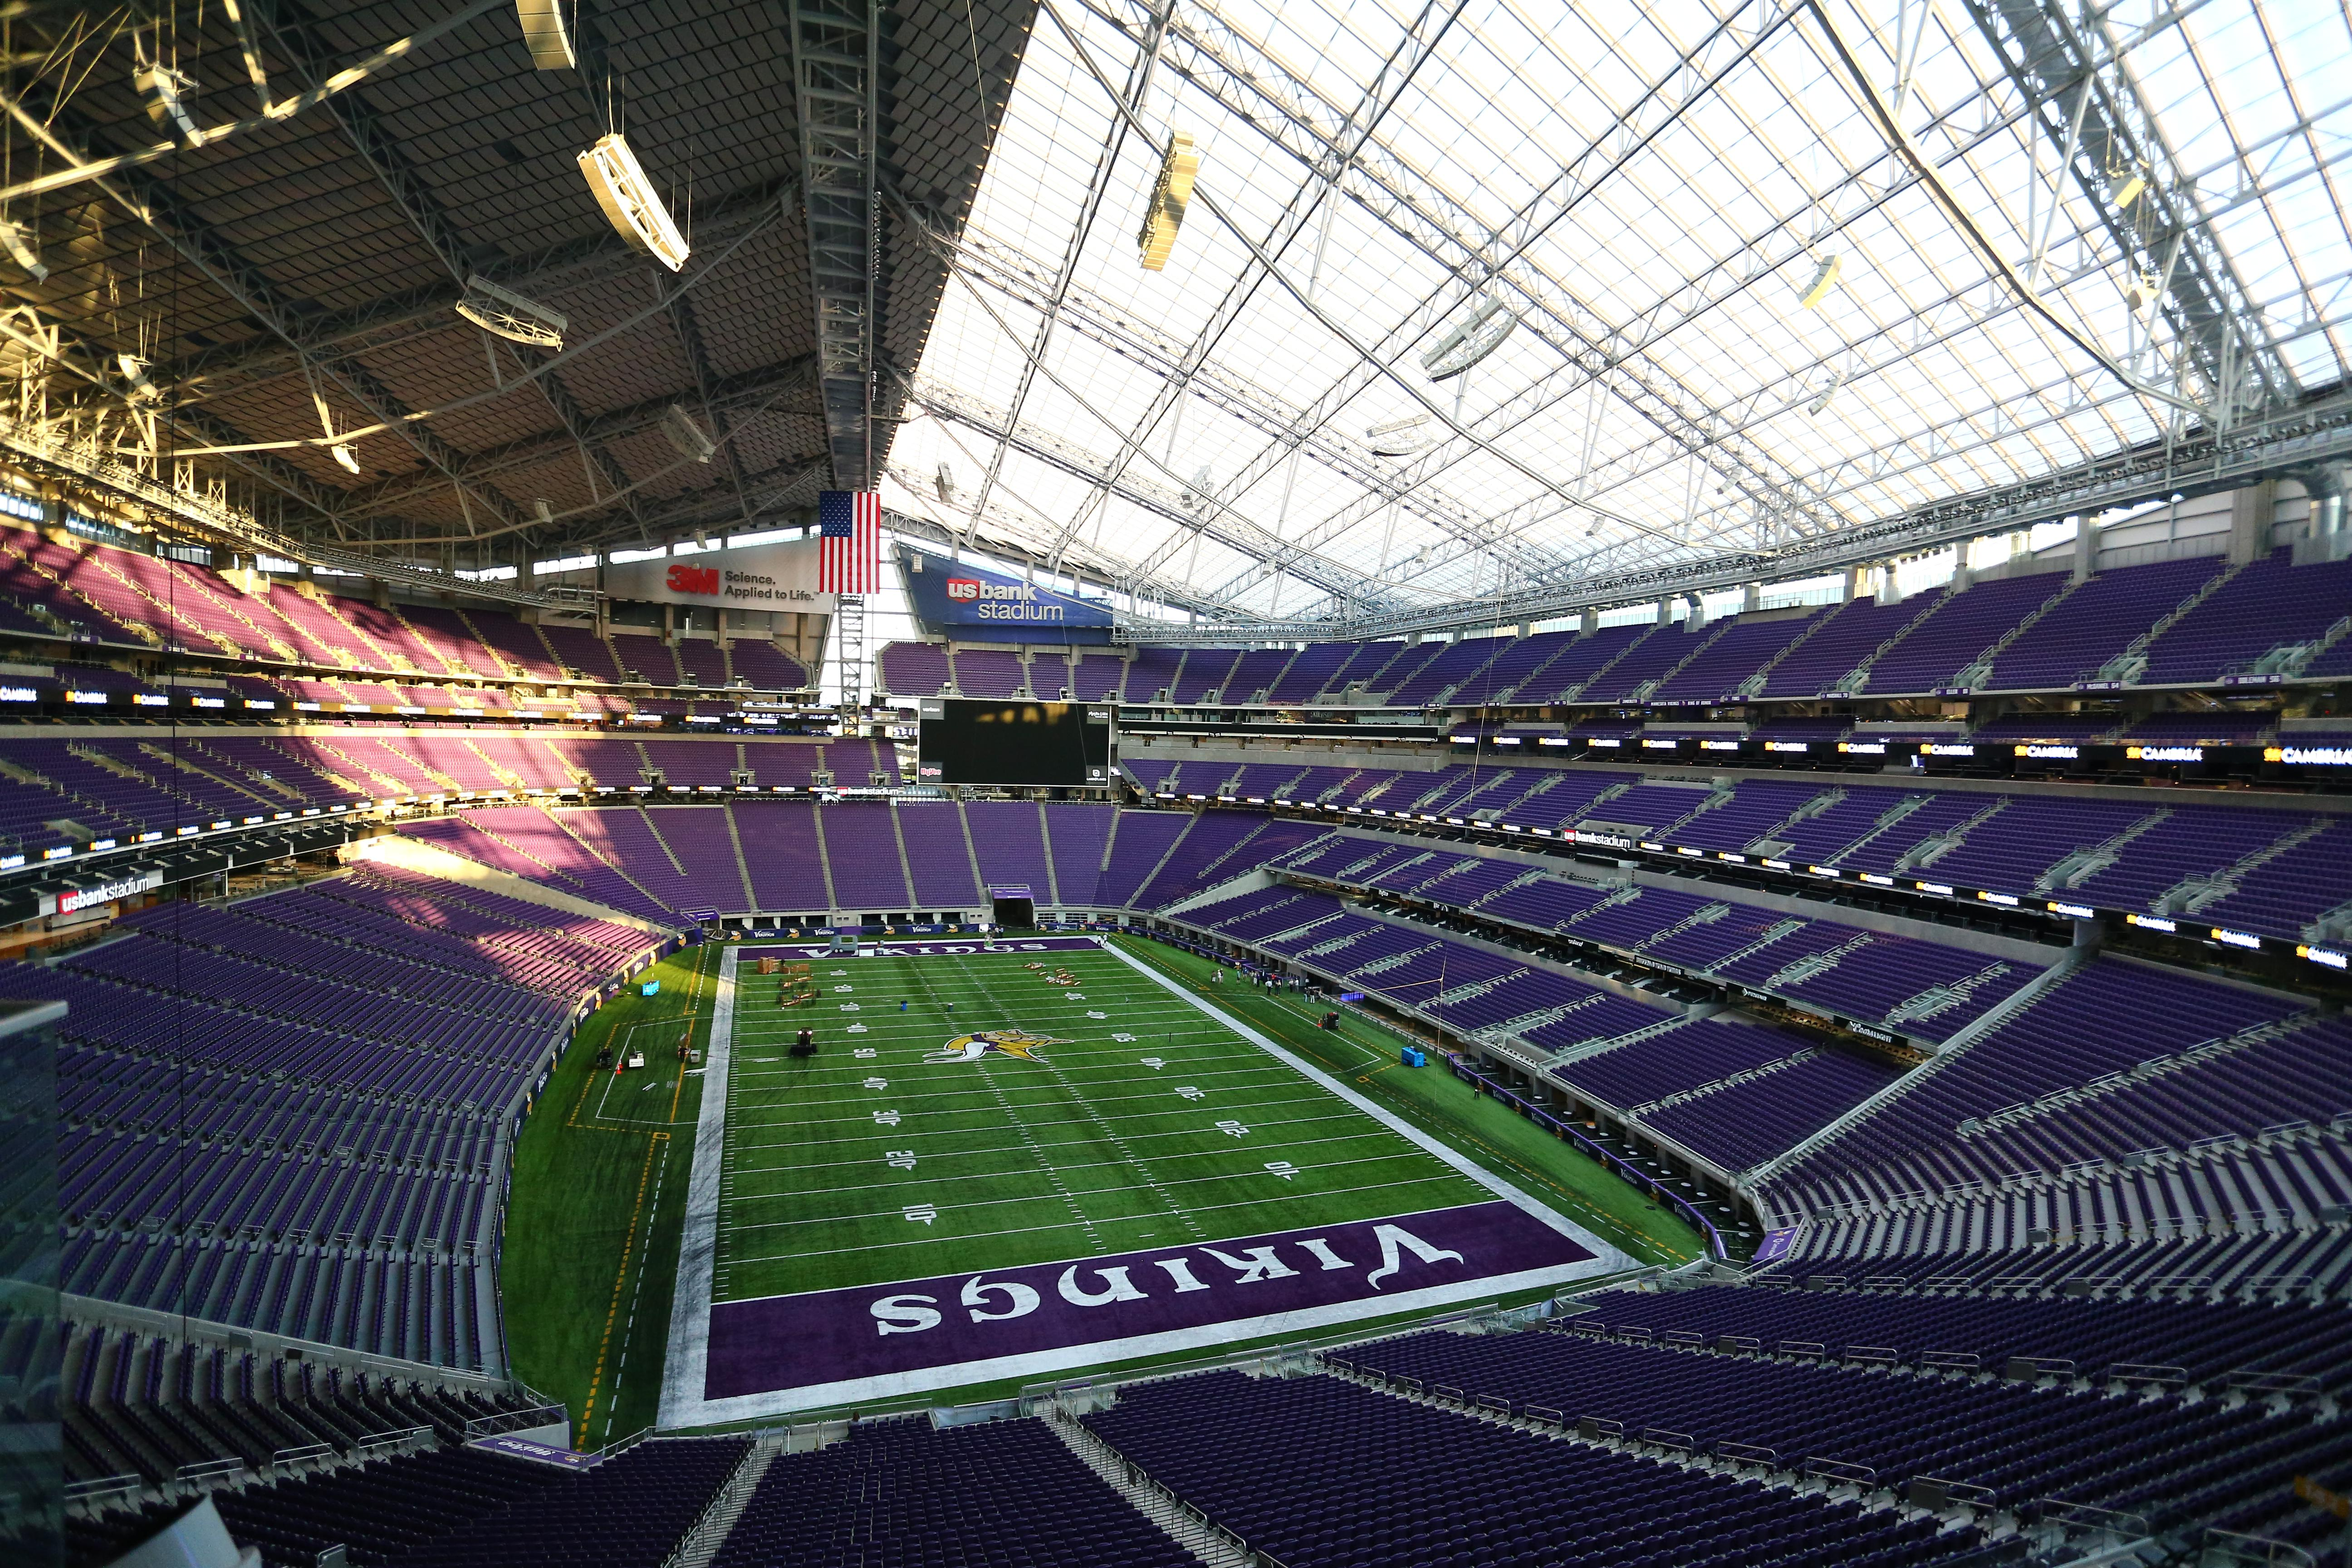 US Bank Stadium spreads over 1.75million square feet in the heart of downtown Minneapolis